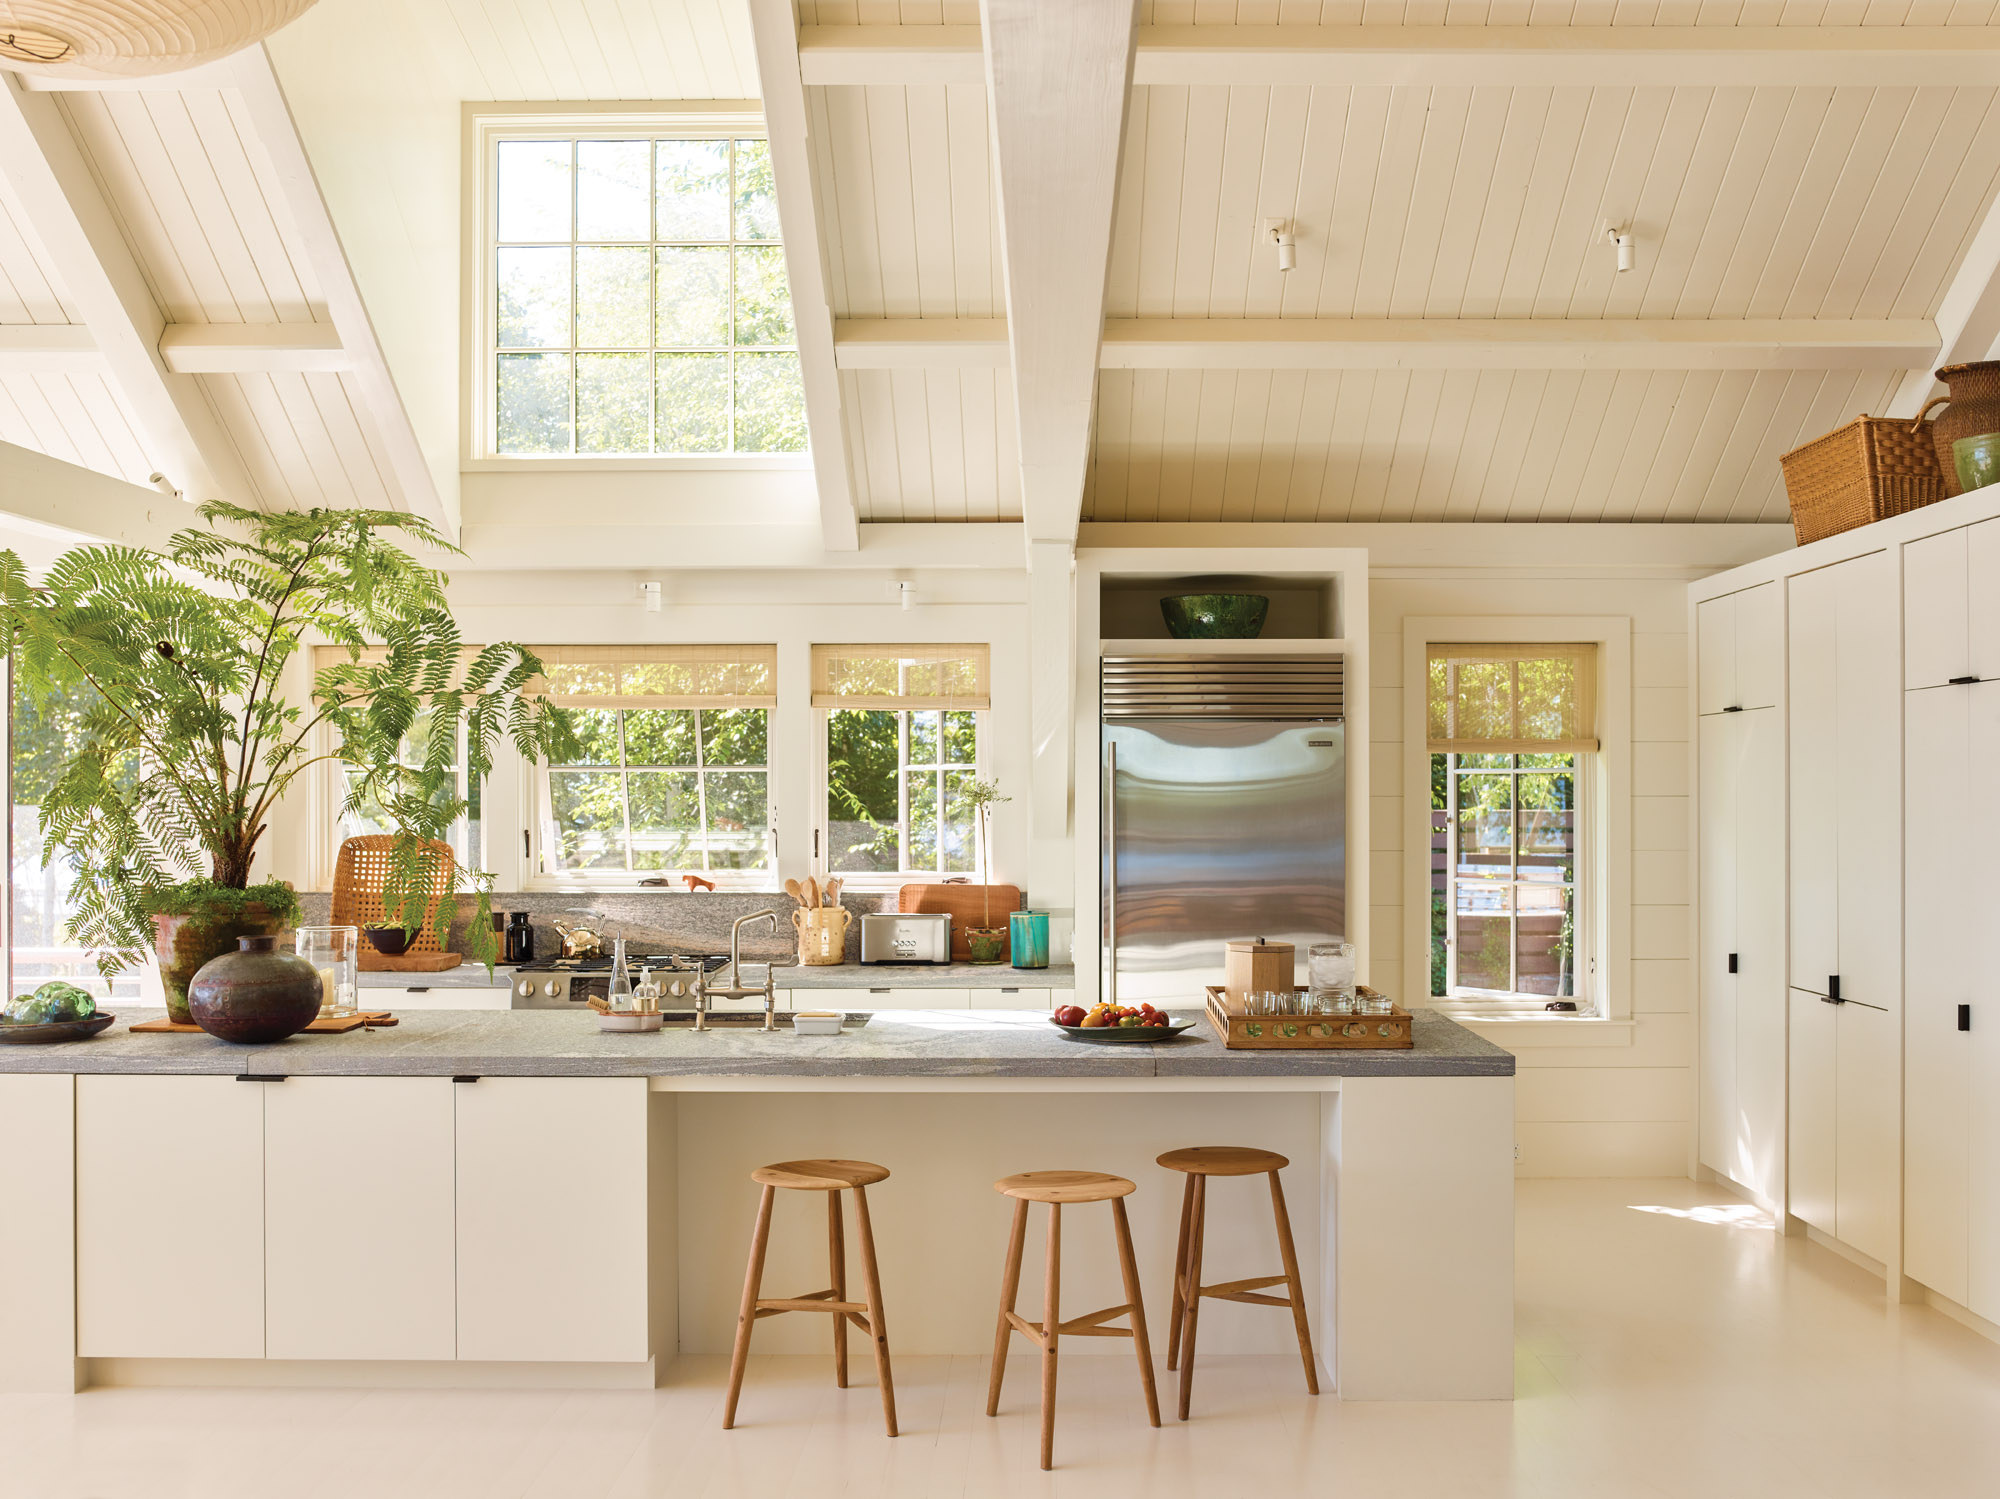 Maine granite counters, Gil Schafer summer house